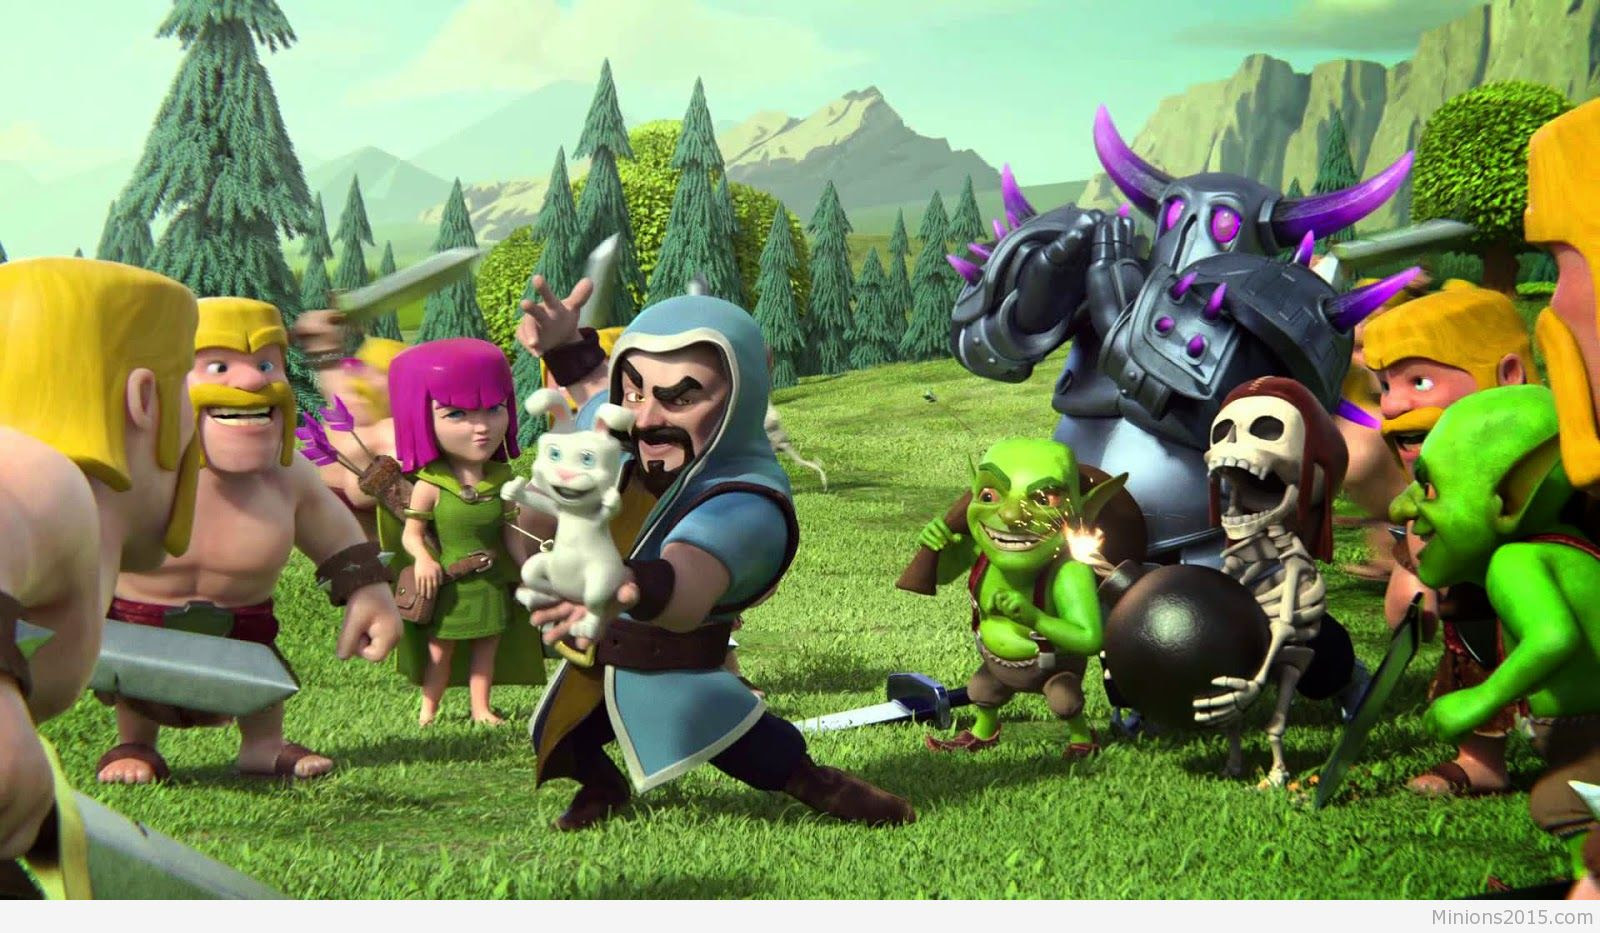 Download Clash Of Clans Wallpaper Hd 1080p Pc